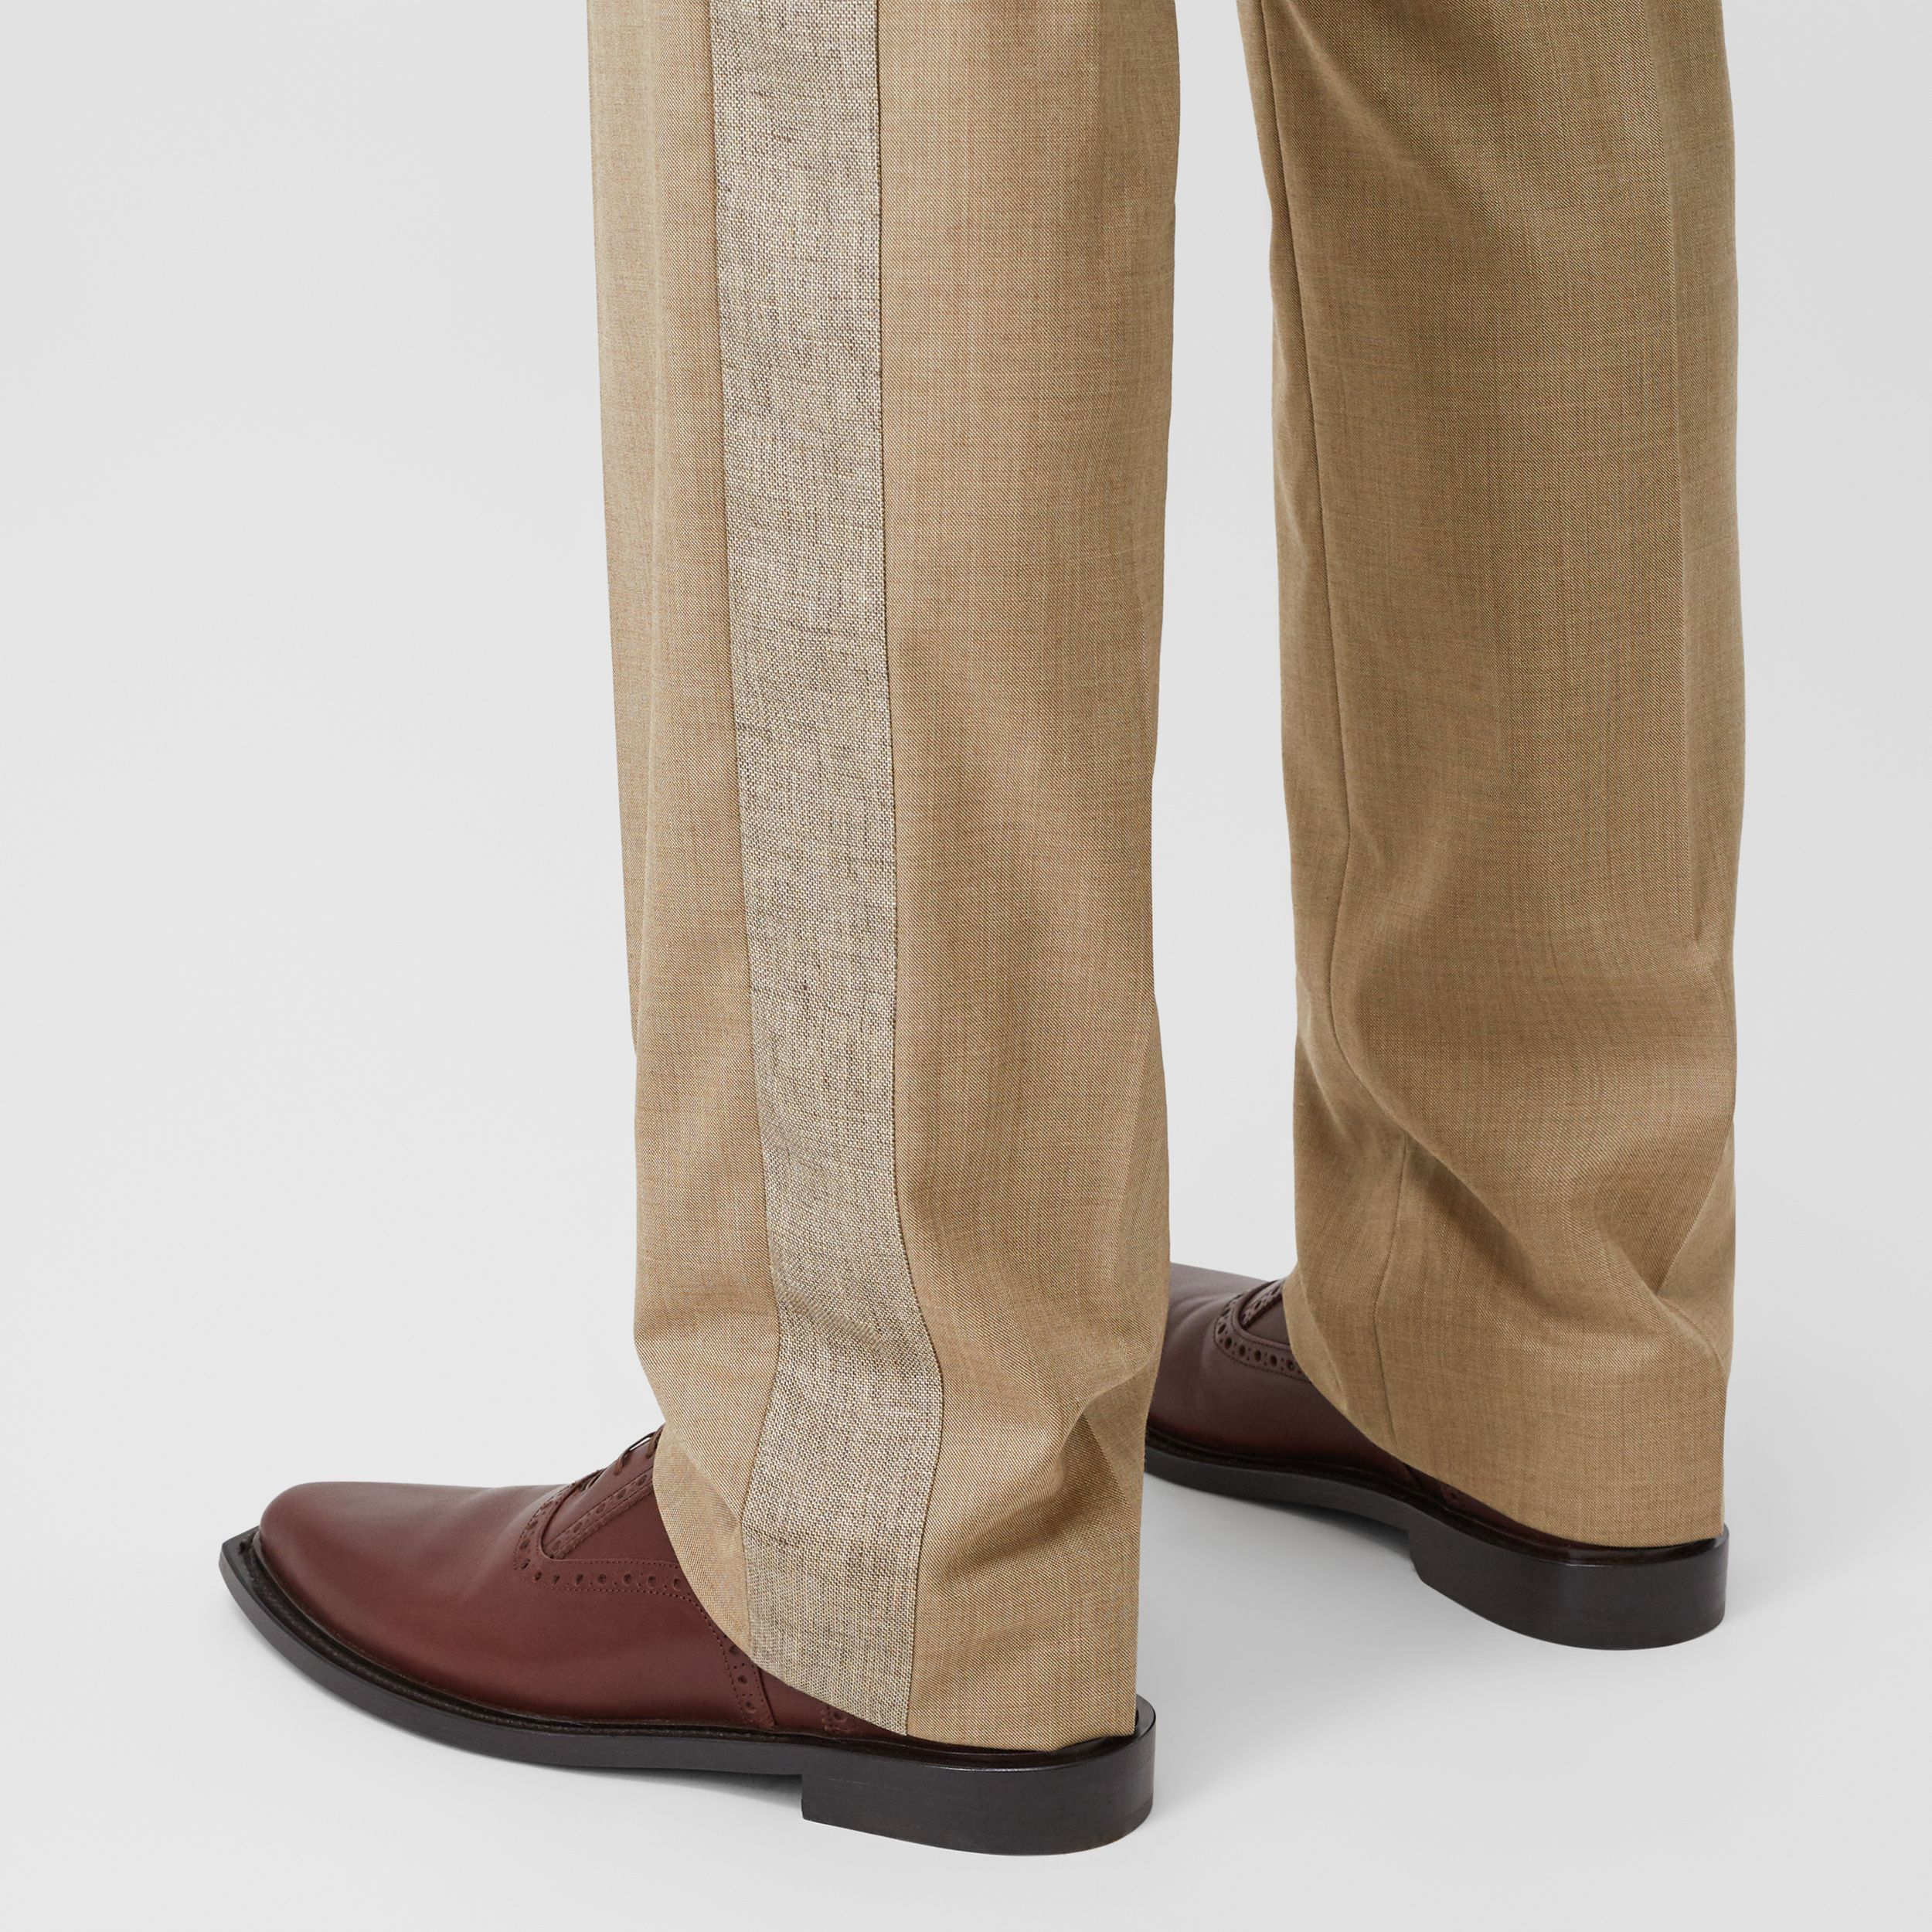 English Fit Wool Cashmere and Linen Tailored Trousers in Pecan Melange - Men | Burberry - 2